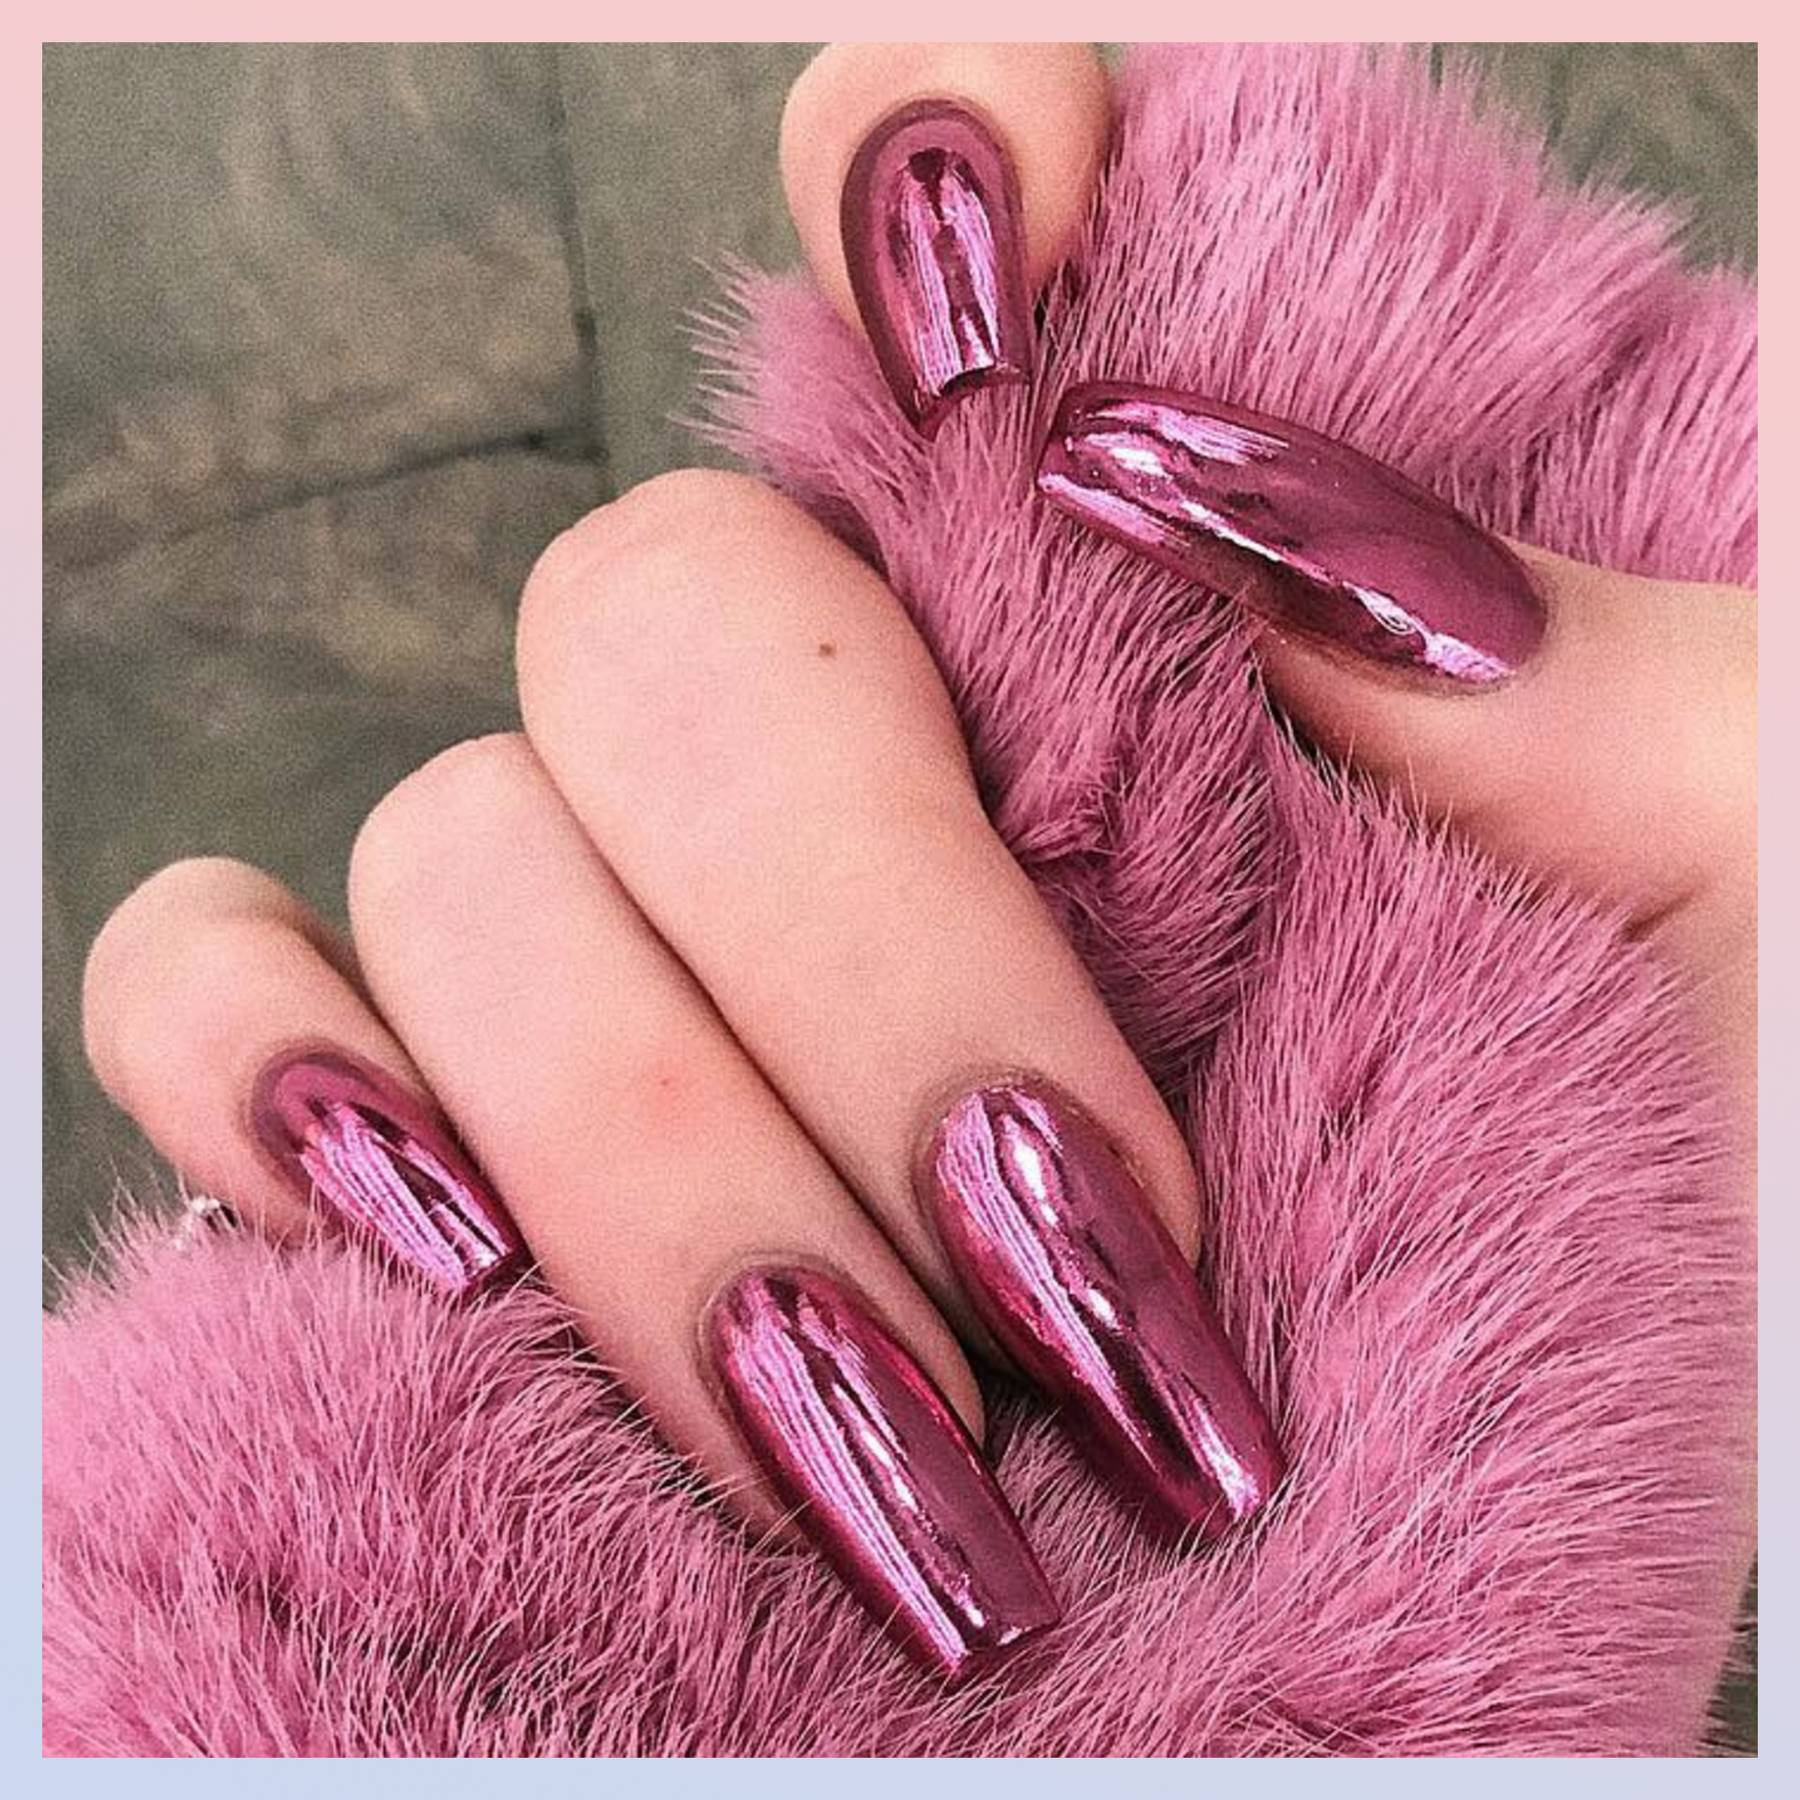 Acrylic Nails: How To Apply & Best Maintenance Tips | Glamour UK on christmas home nail designs, easy home make up, zebra nail designs, cool nail designs, crazy nail designs, simple home nail designs, easy fingernail designs, basic nail designs, red nail designs,